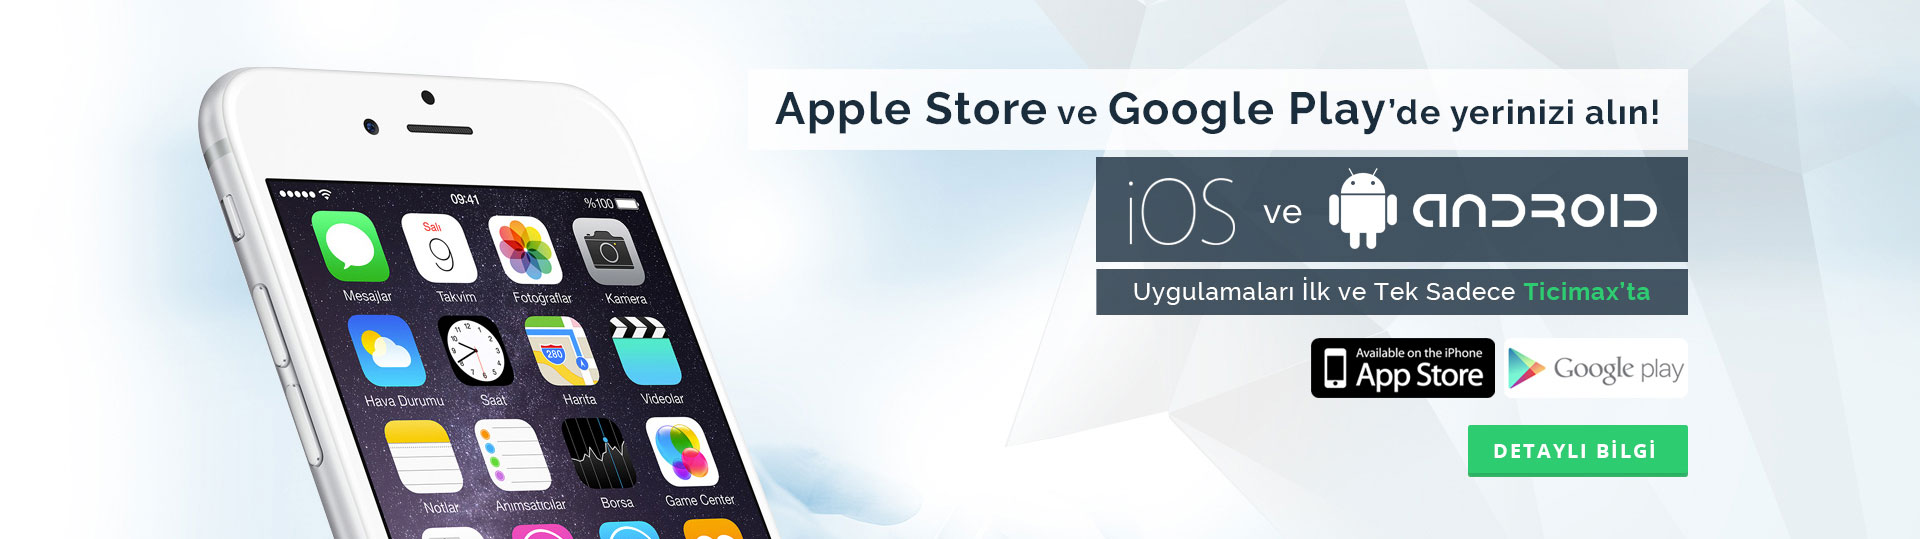 Eticaret Apple Store ve Google Play'de